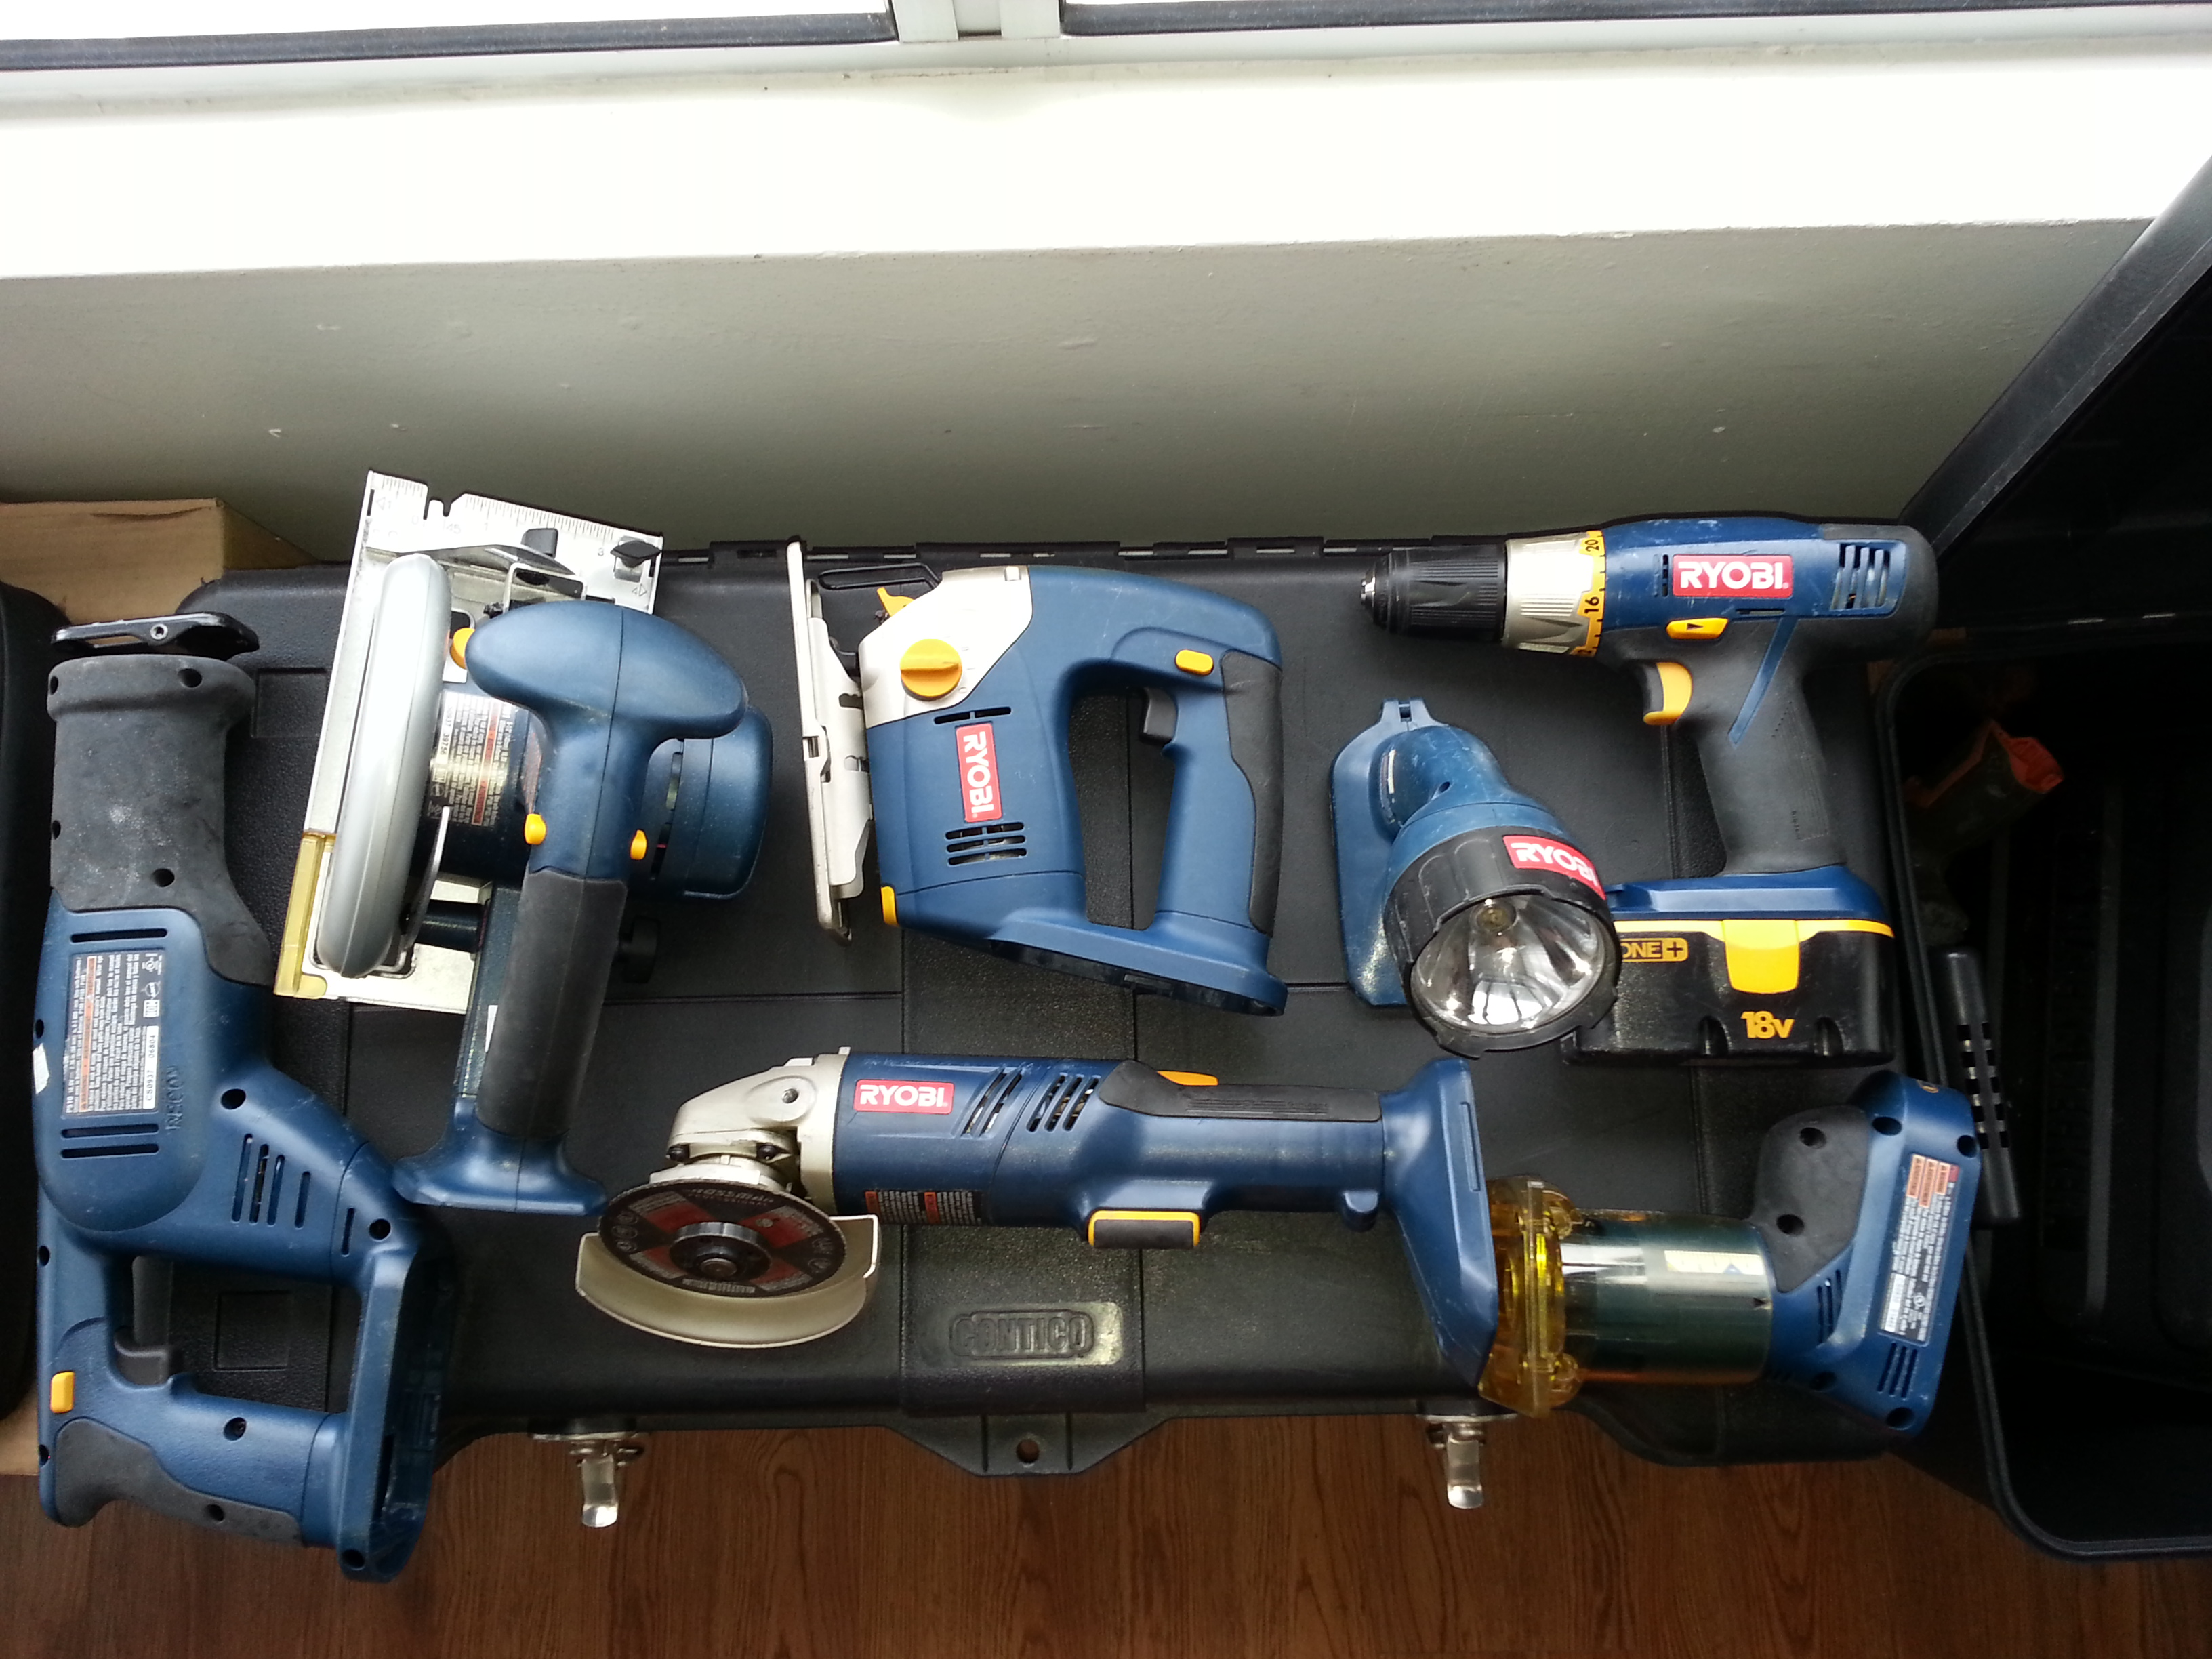 Picture of Cordless Power Tool Conversion 18VDC to 120/240VAC